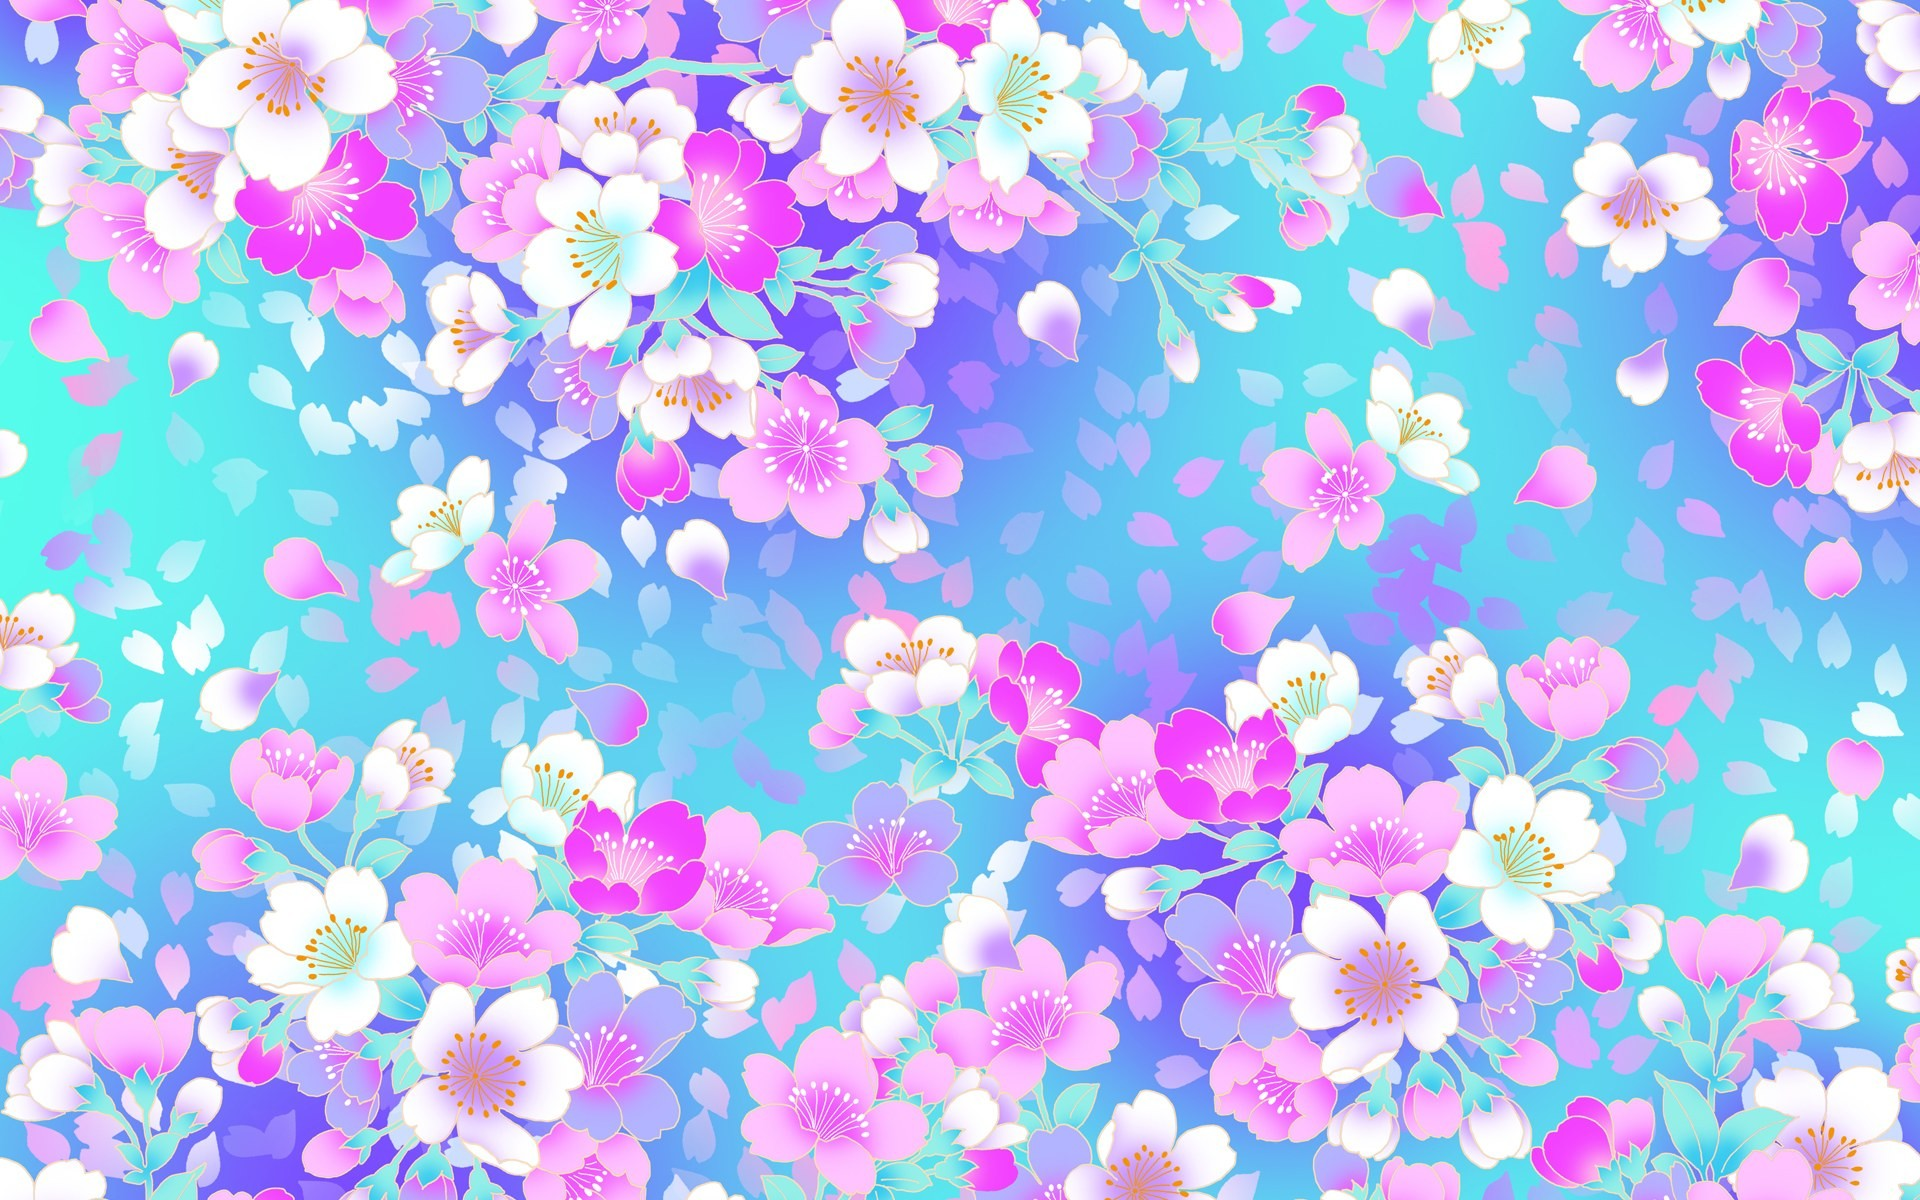 Cute Girly Tumblr Wallpapers: Pretty Girly Wallpapers (58+ Images